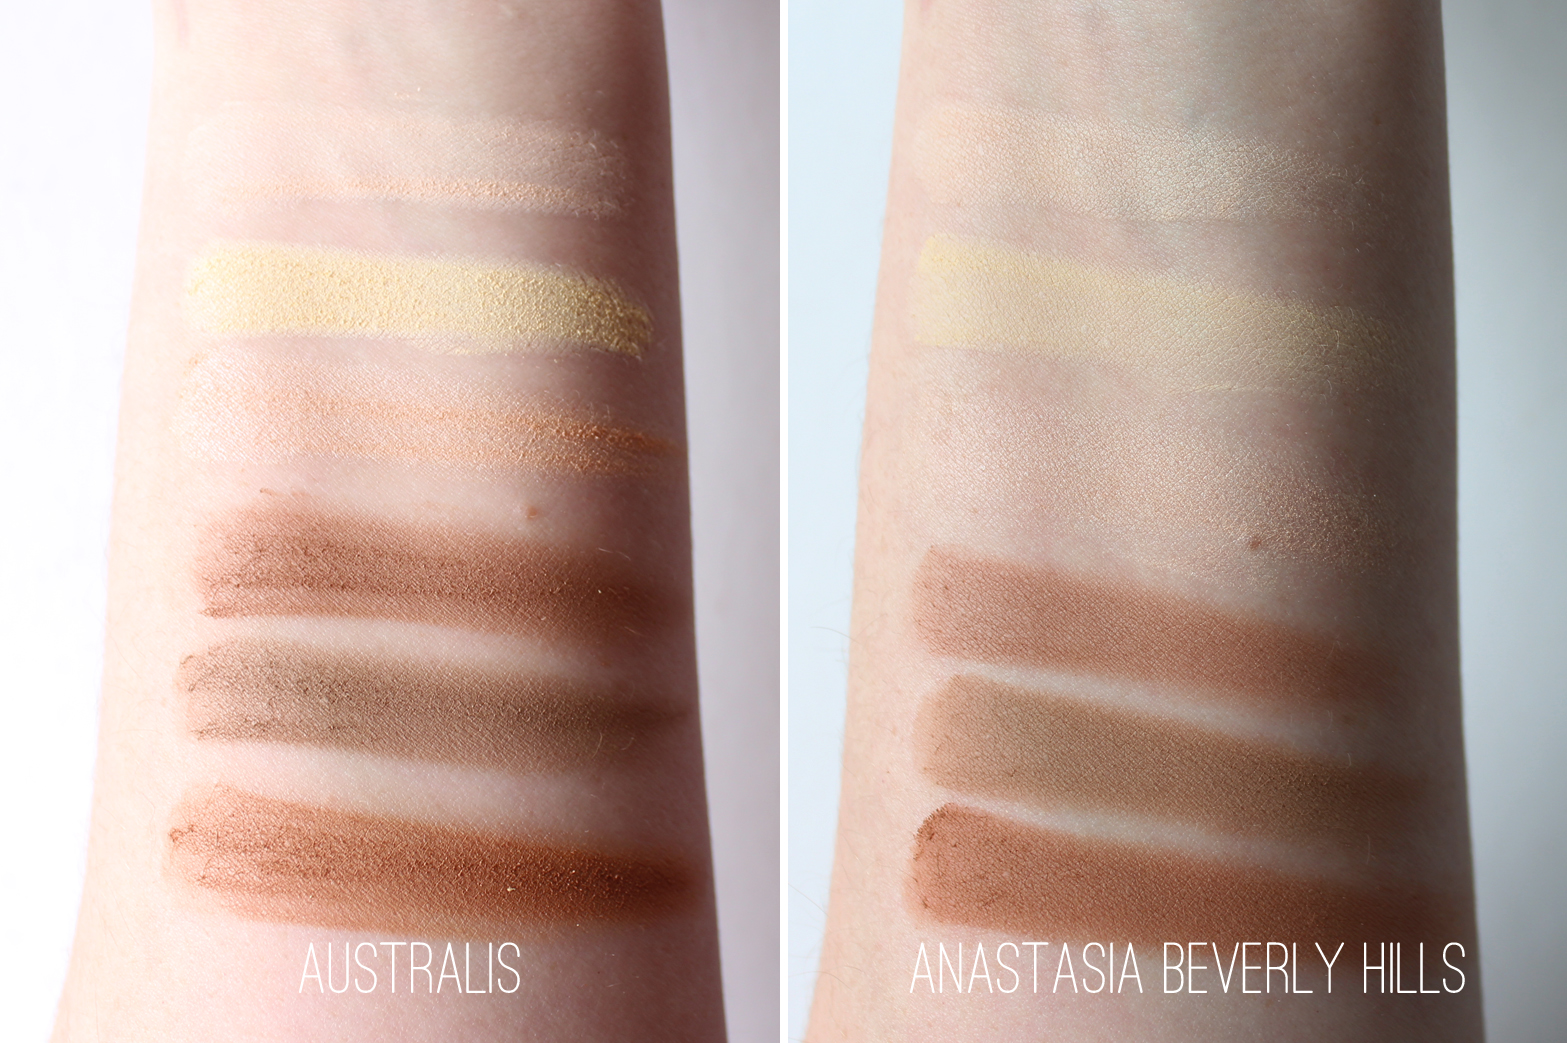 AUSTRALIS | AC On Tour Contouring + Highlighting Kit - Review + Swatches - Anastasia Beverly Hills Contour Kit Comparison - CassandraMyee